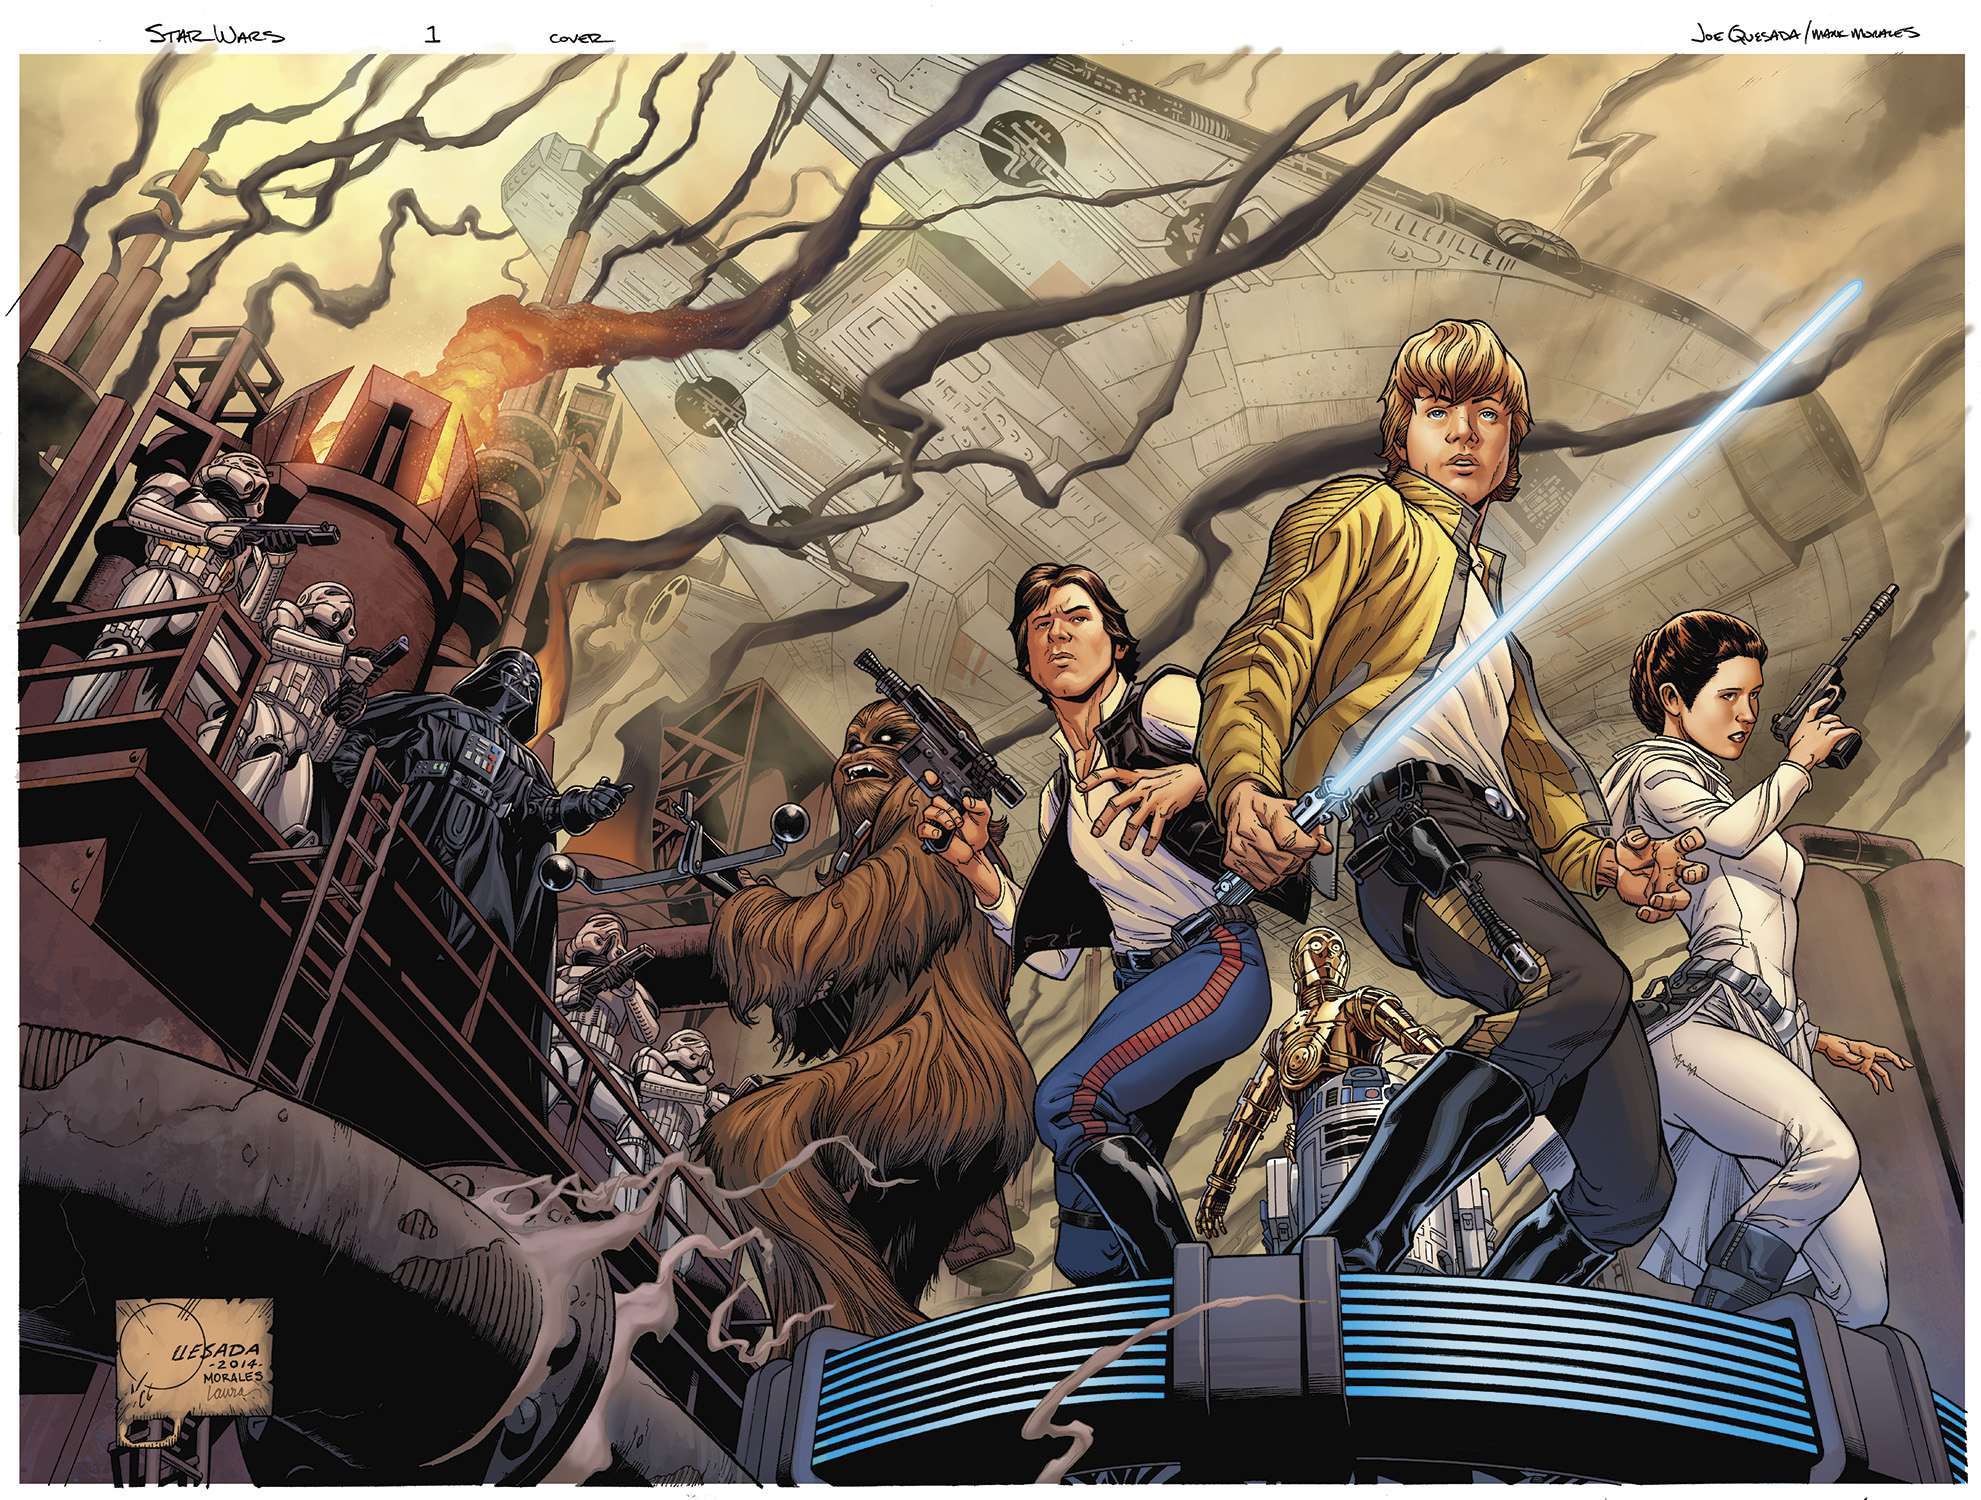 Star Wars #1 Wraparound Cover